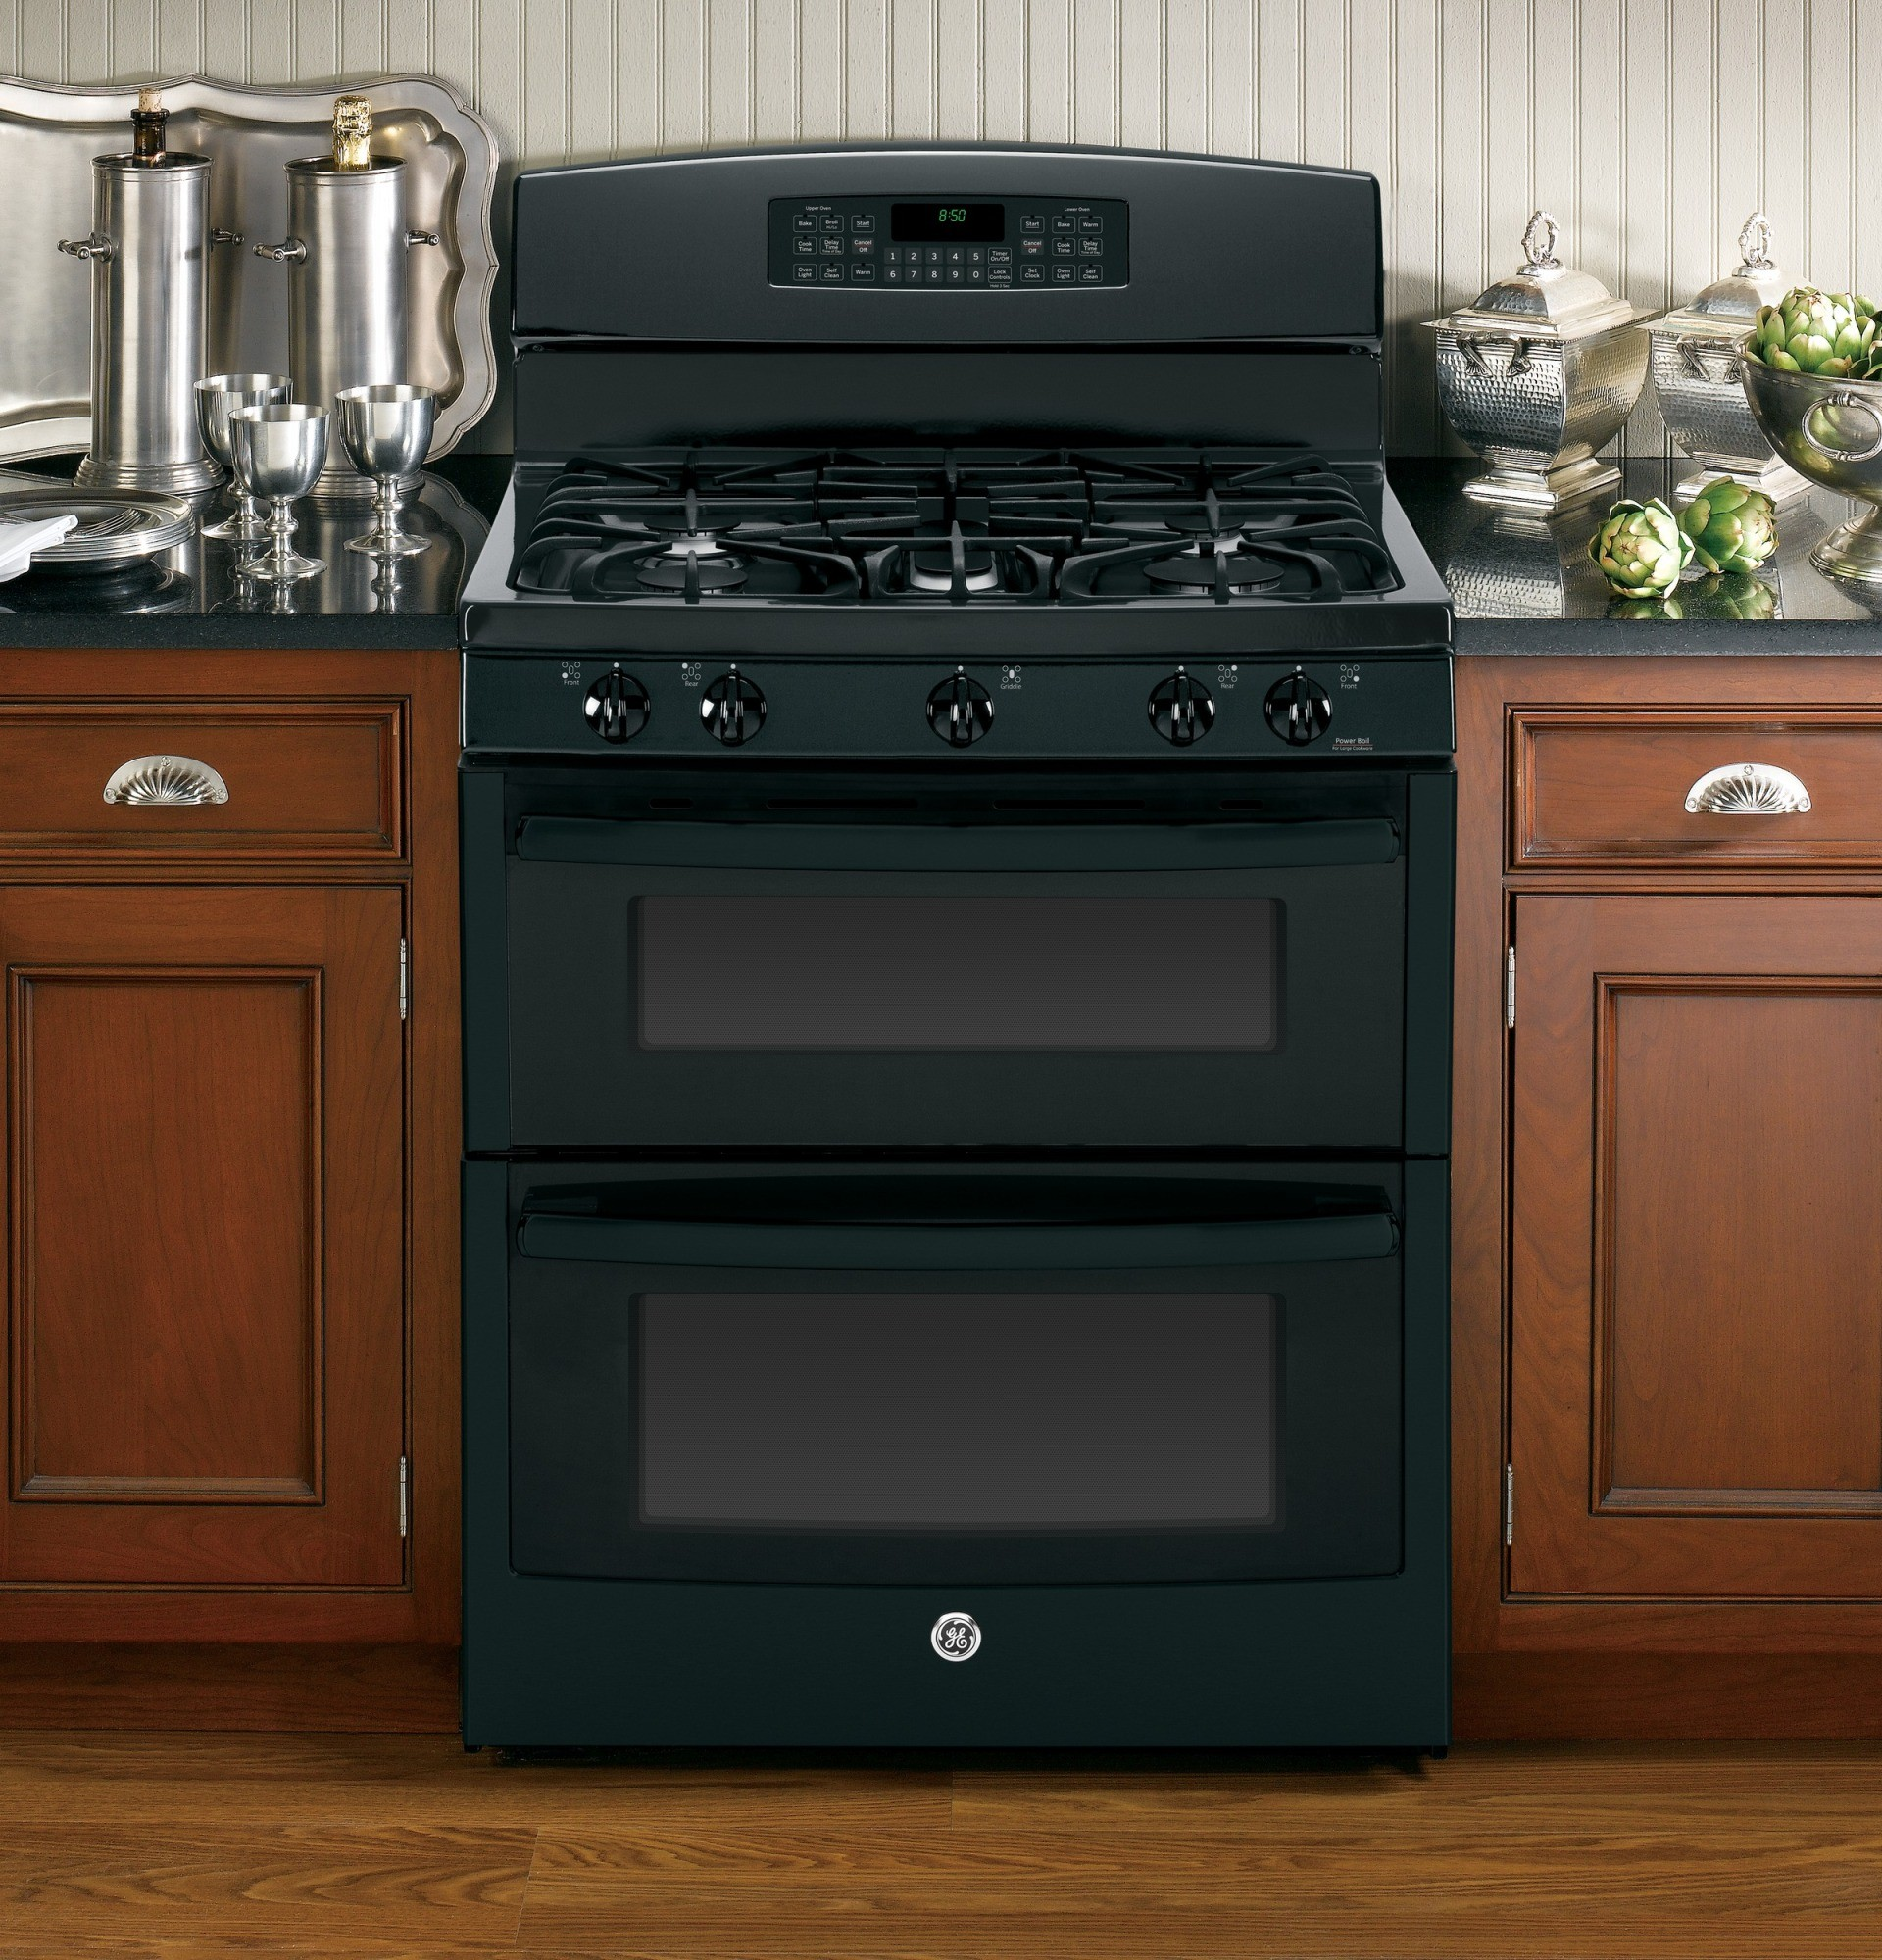 Jgb850defbb Ge 30 Quot Free Standing Gas Double Oven Range